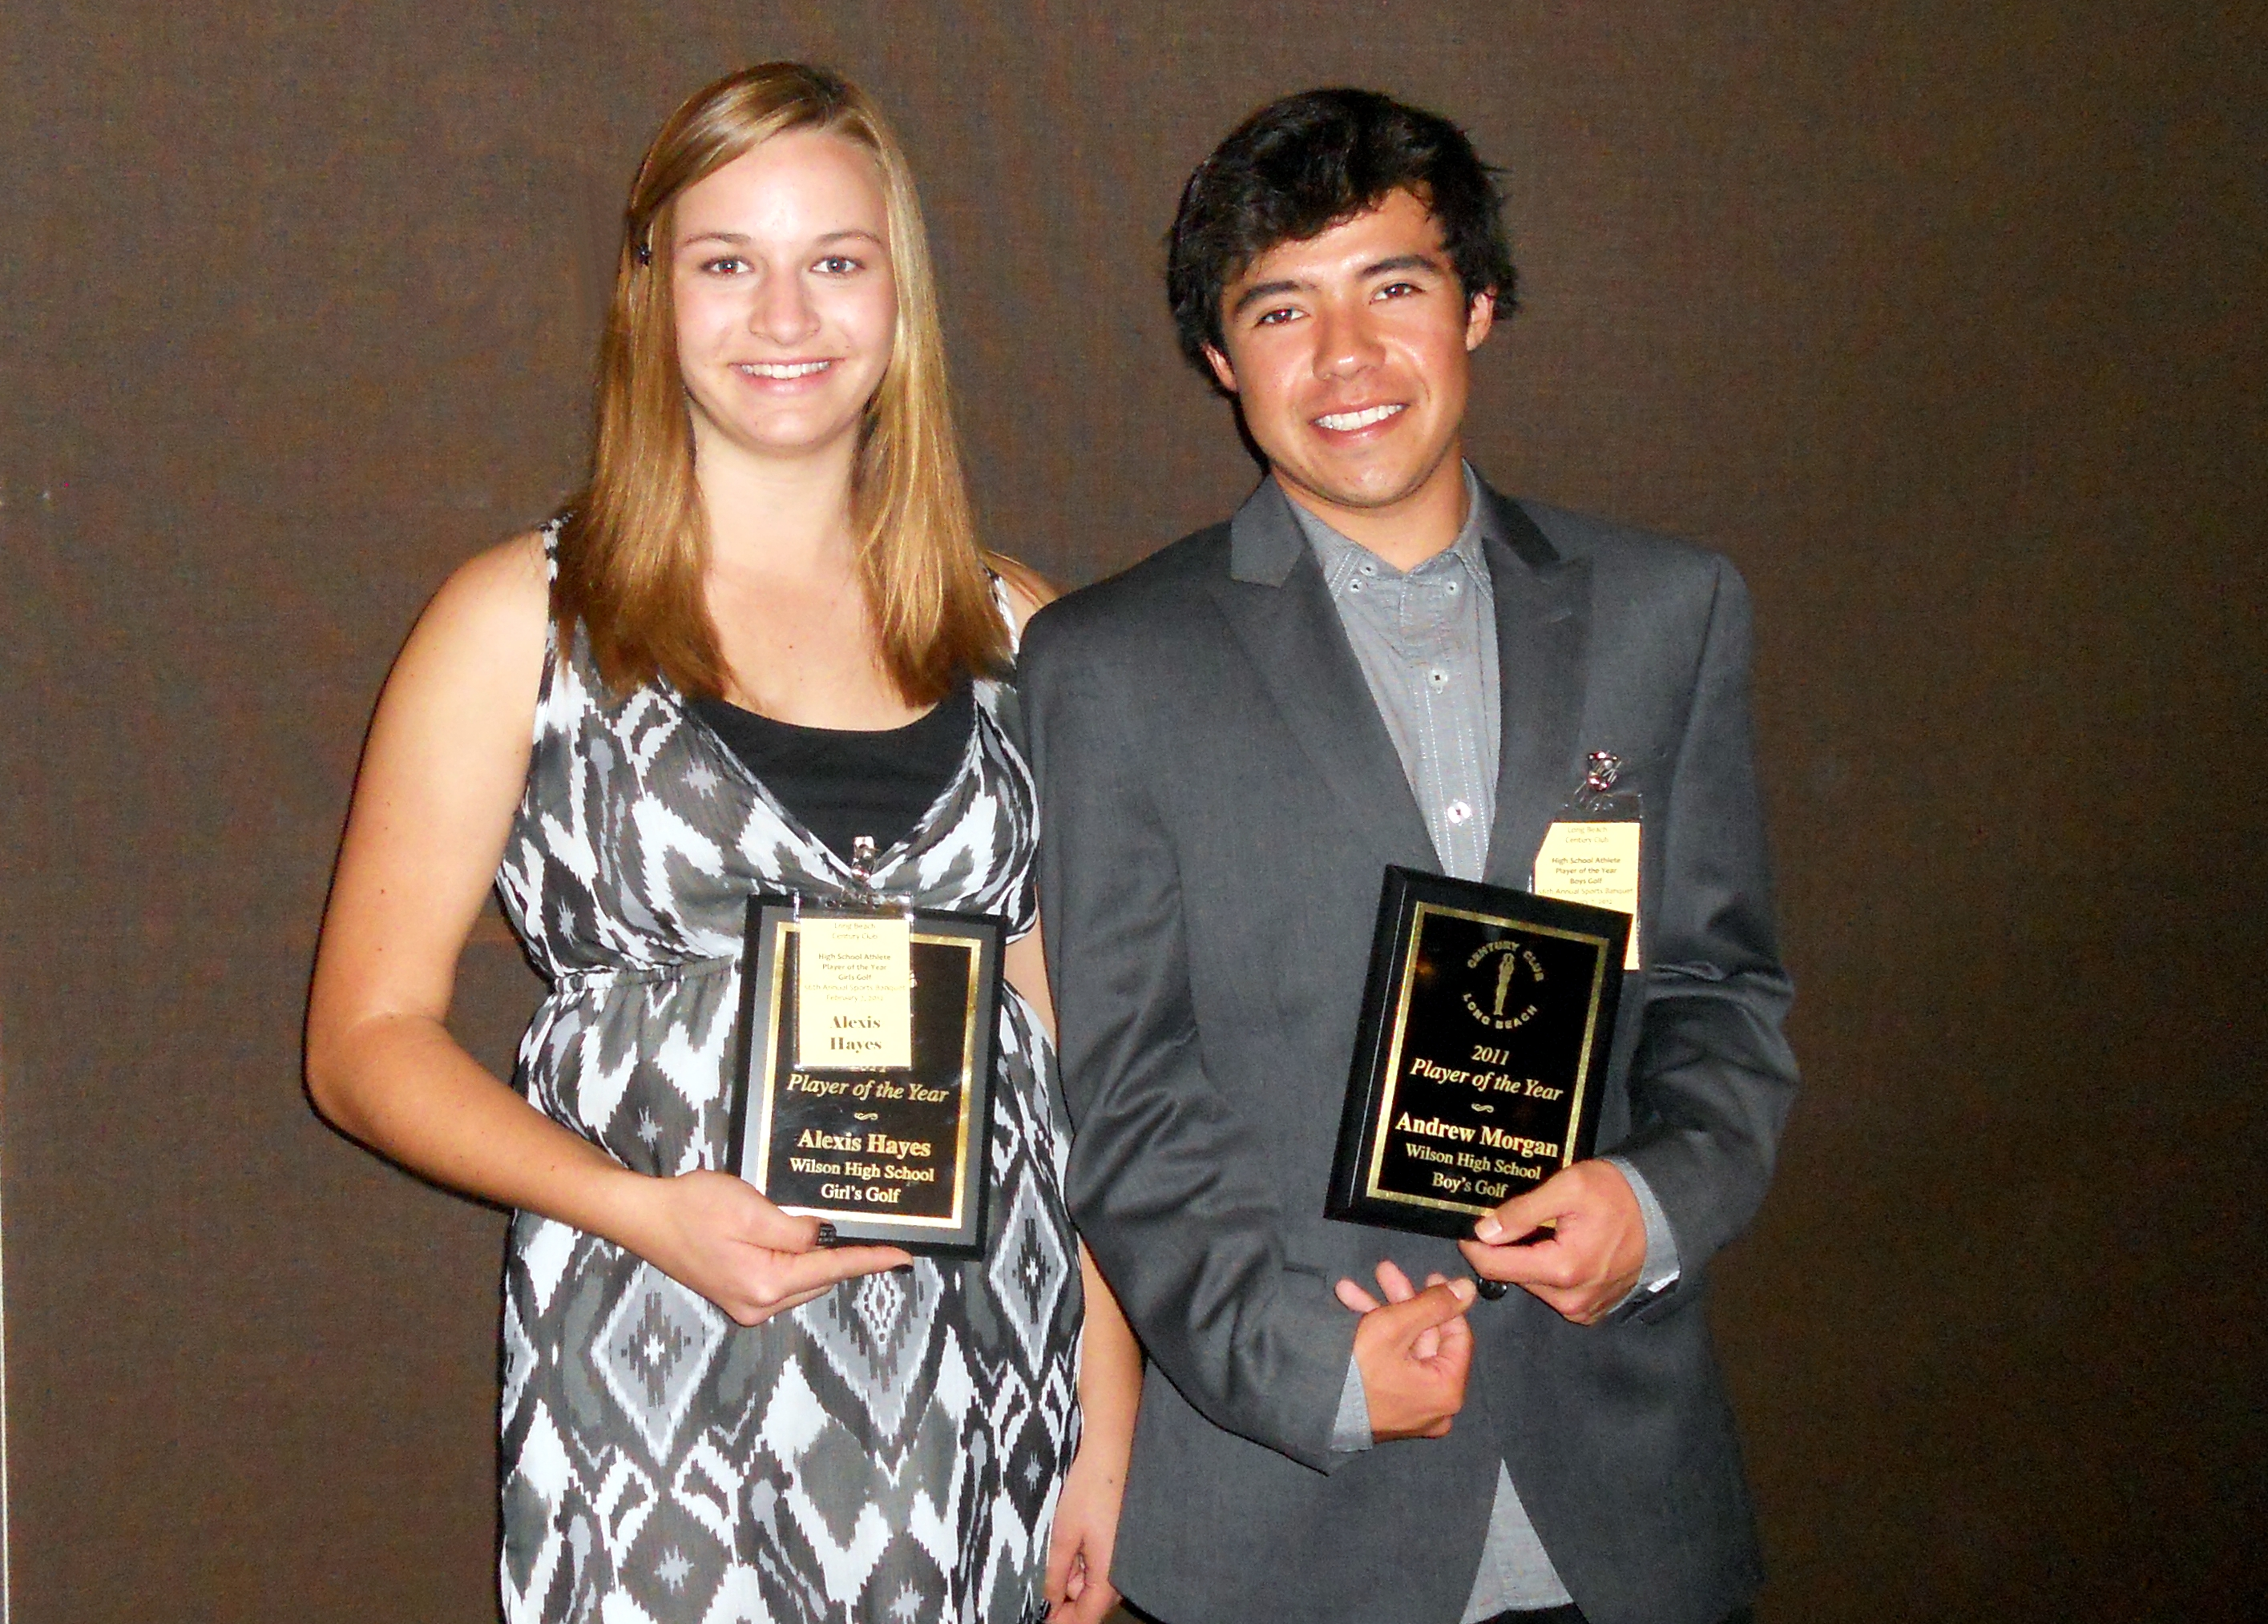 2011 LB Century Club Golfers of the Year - Alexis Hayes and Andrew Morgan